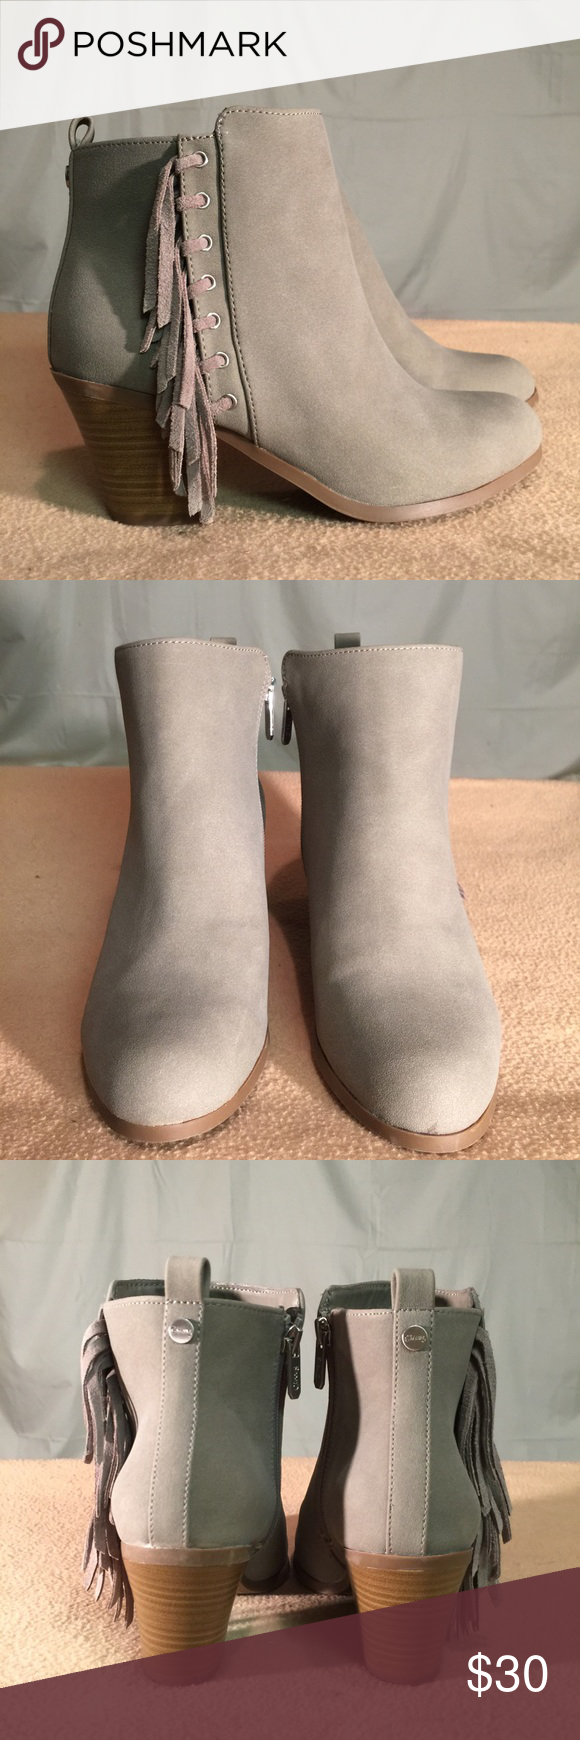 New Circus By Sam Edelman Greenish Gray Booties These Booties are Brand New/Never Worn and are in PERFECT CONDITION. The heel height of this shoe is 3 inches tall. Circus by Sam Edelman Shoes Ankle Boots & Booties